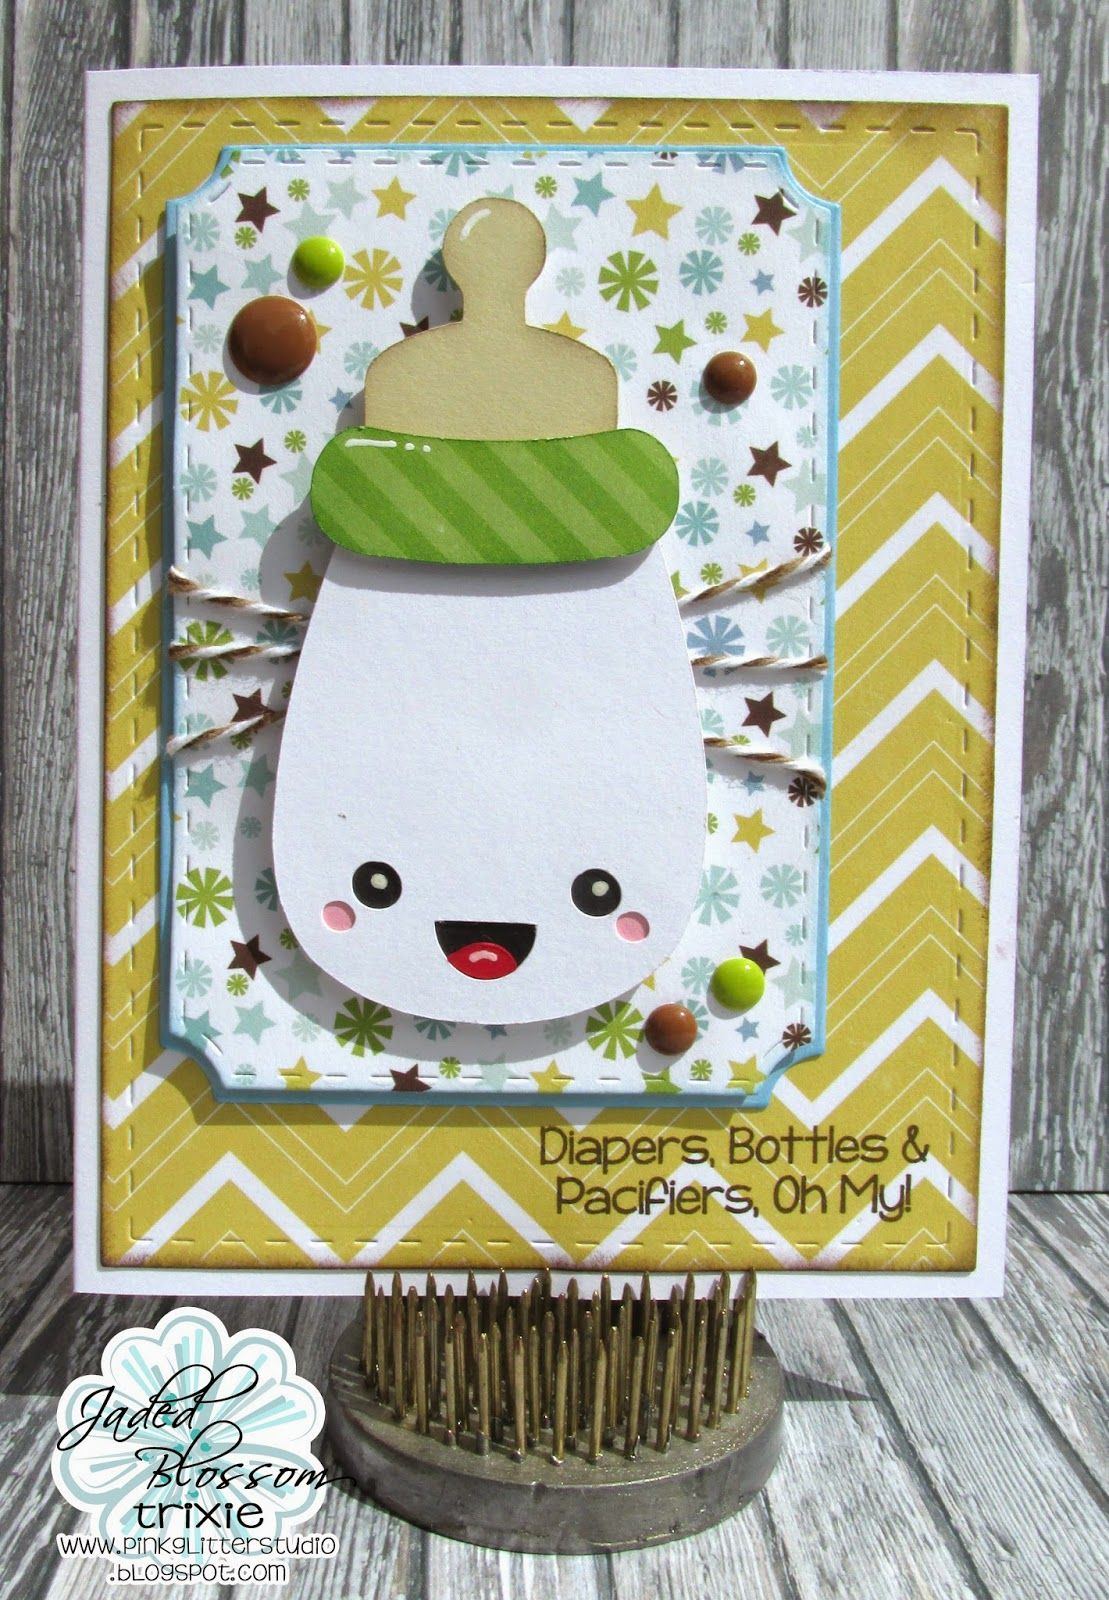 Jaded Blossom: Diapers, Bottles & Pacifiers, Oh My!